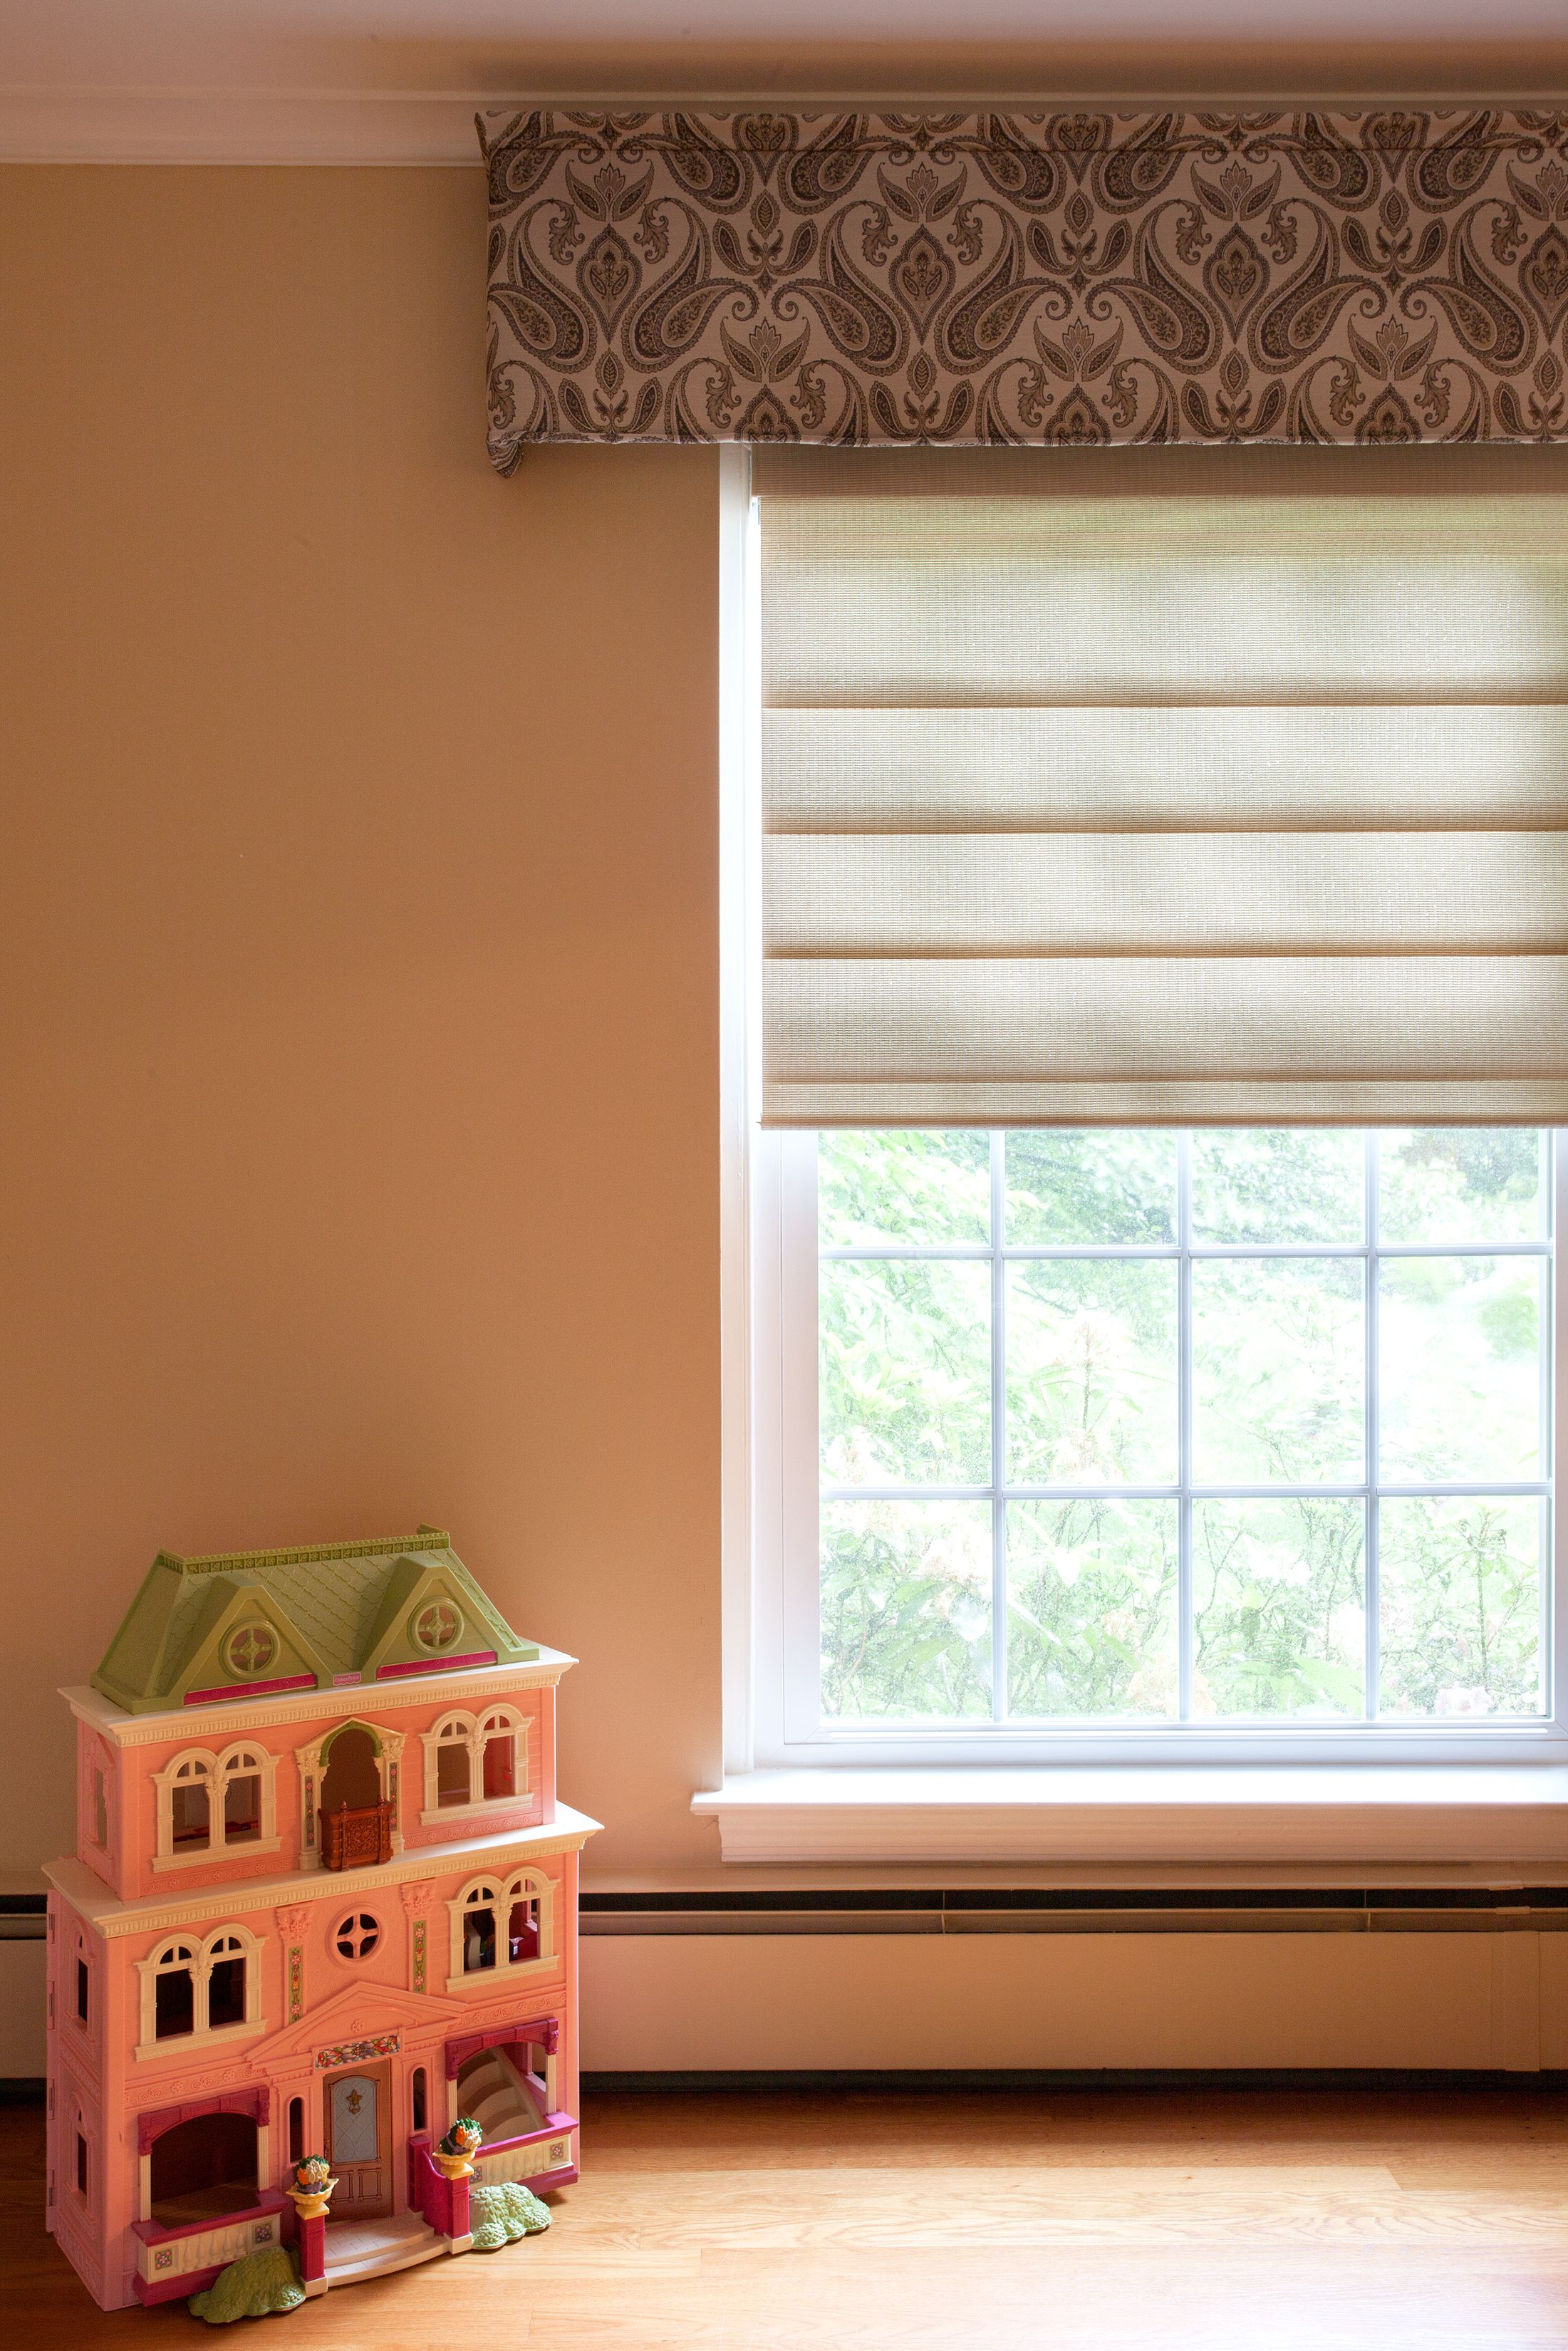 Kids Playroom W Designer Roller Shades And Custom Fabric Valance